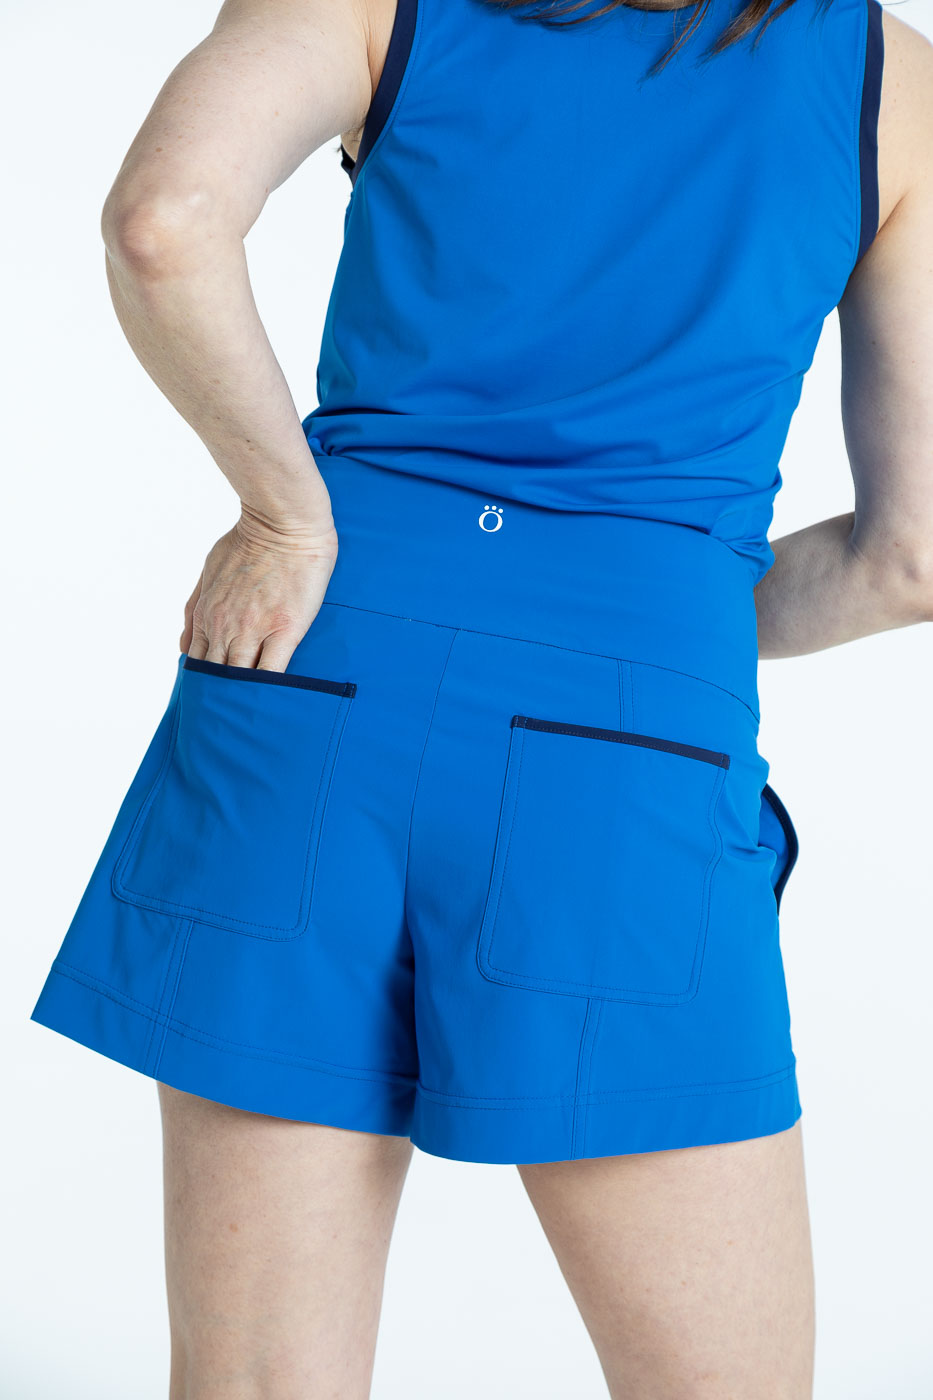 Back view of woman golfer in a blueberry blue Shape Shifter sleeveless golf top and blueberry blue Carry My Cargo Shorts